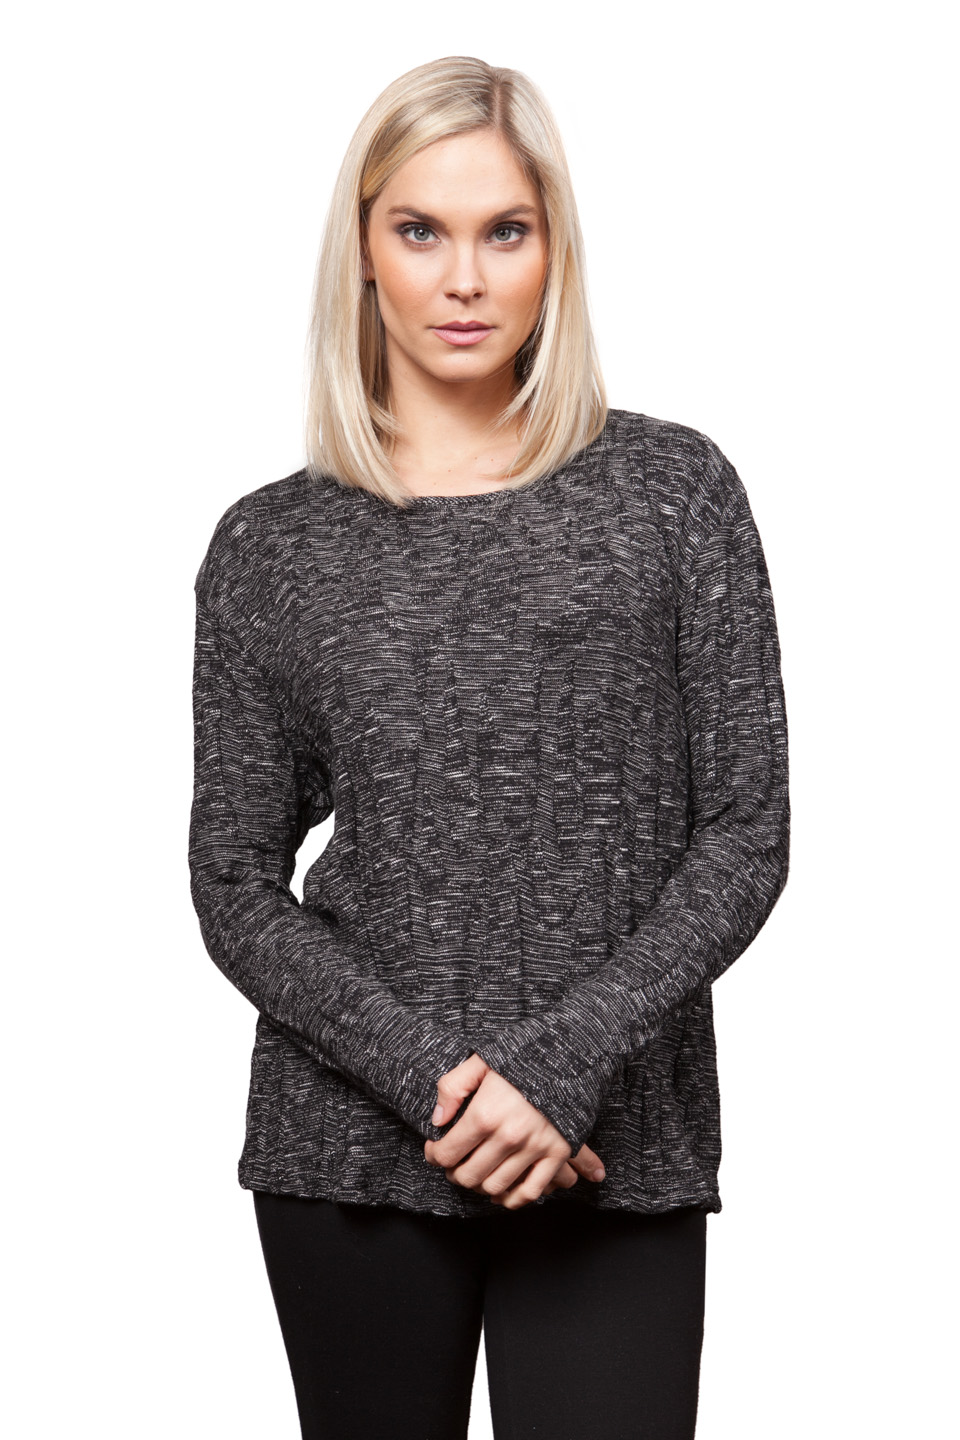 Copy of Style # 18299-16, p. 14<br>Space Dyed Jacq'd Knit<br>Color: Ebony, 2 colors<br>&nbsp